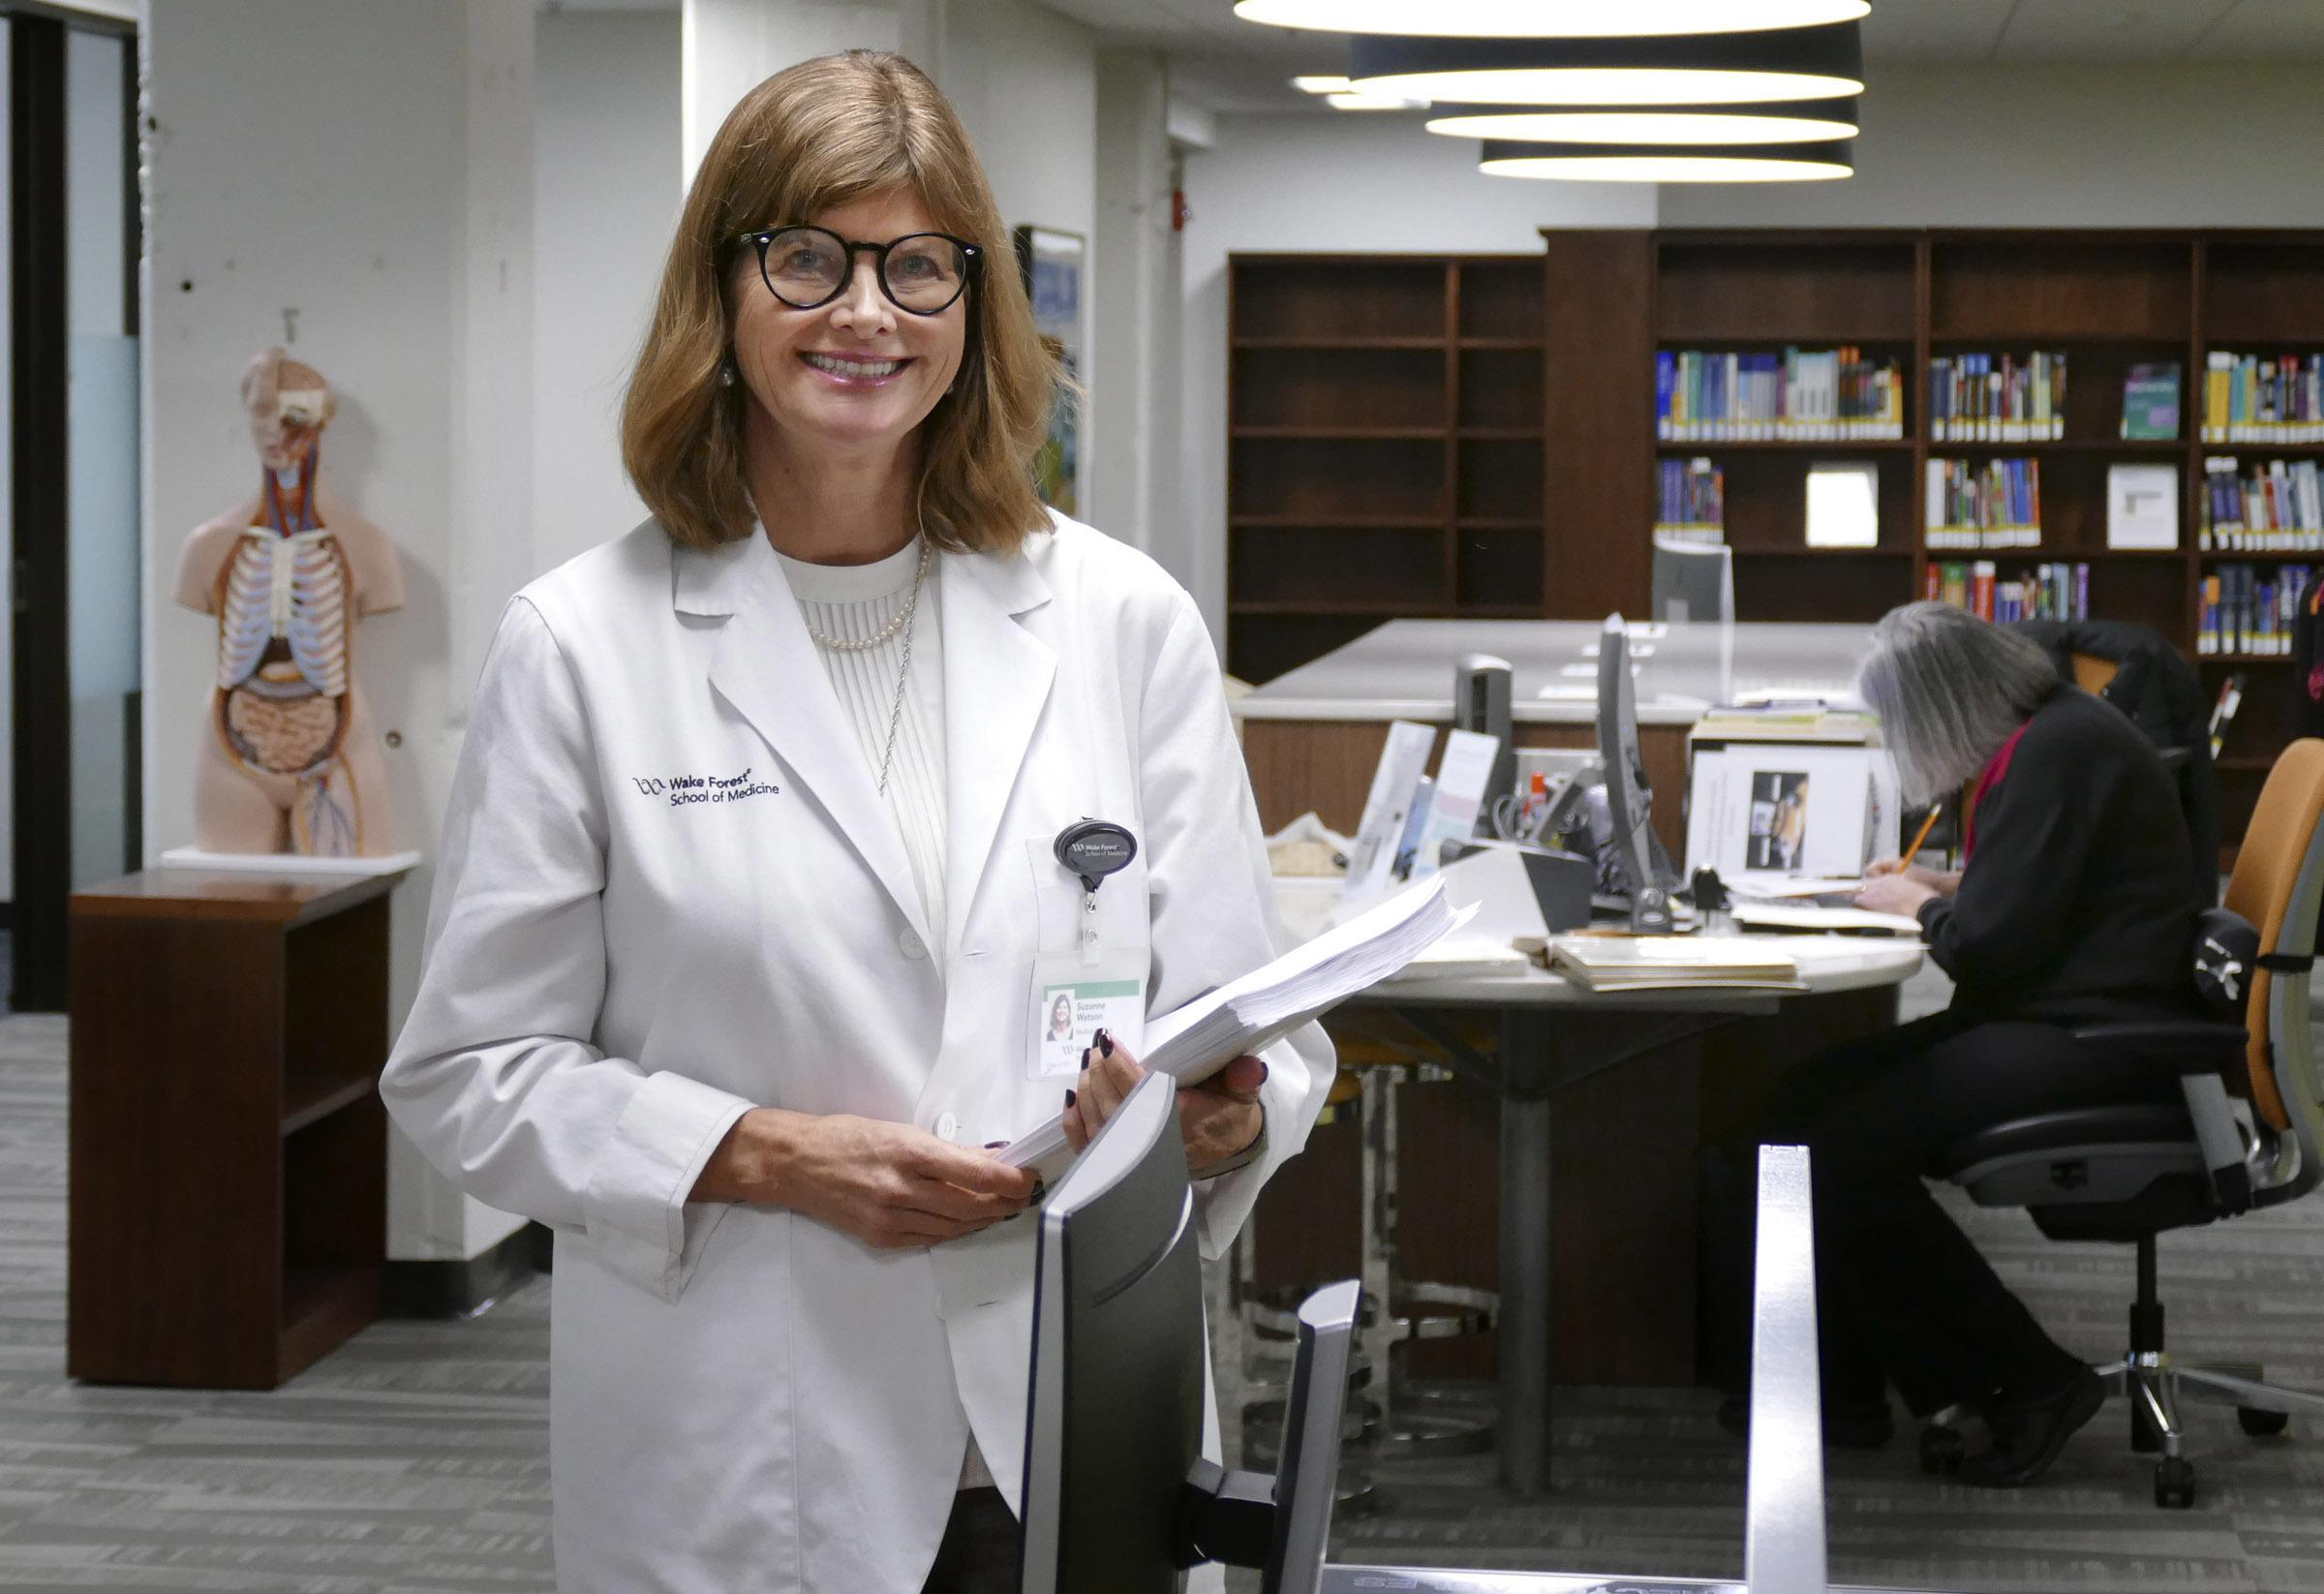 54-year-old medical student living her dream | The Spokesman-Review